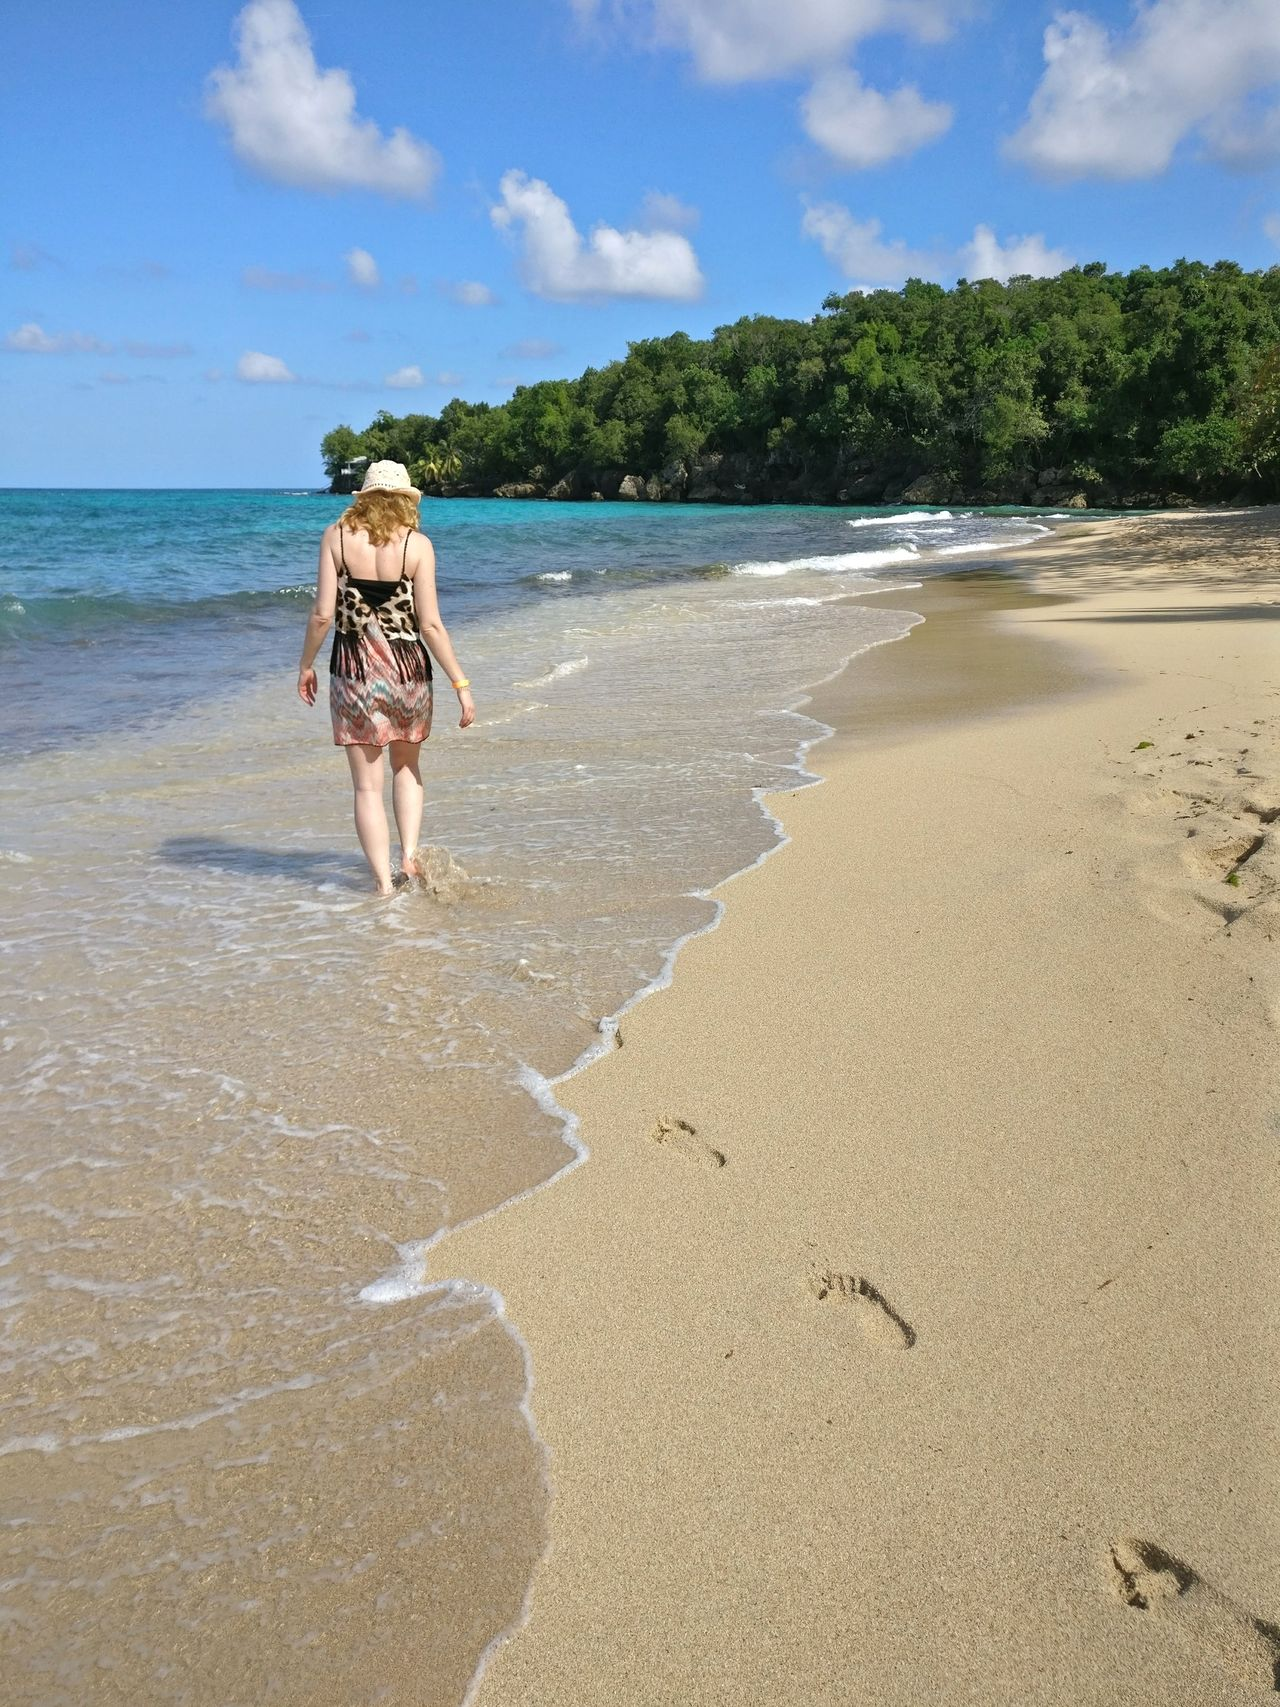 Sand Beach Sea Walking One Person Full Length Vacations Adult People One Woman Only Wat Er Day Adults Only Women Tropical Climate Outdoors Only Women Nature Sky Vacation Beauty In Nature Scenics Footprints In The Sand Footprints Girl